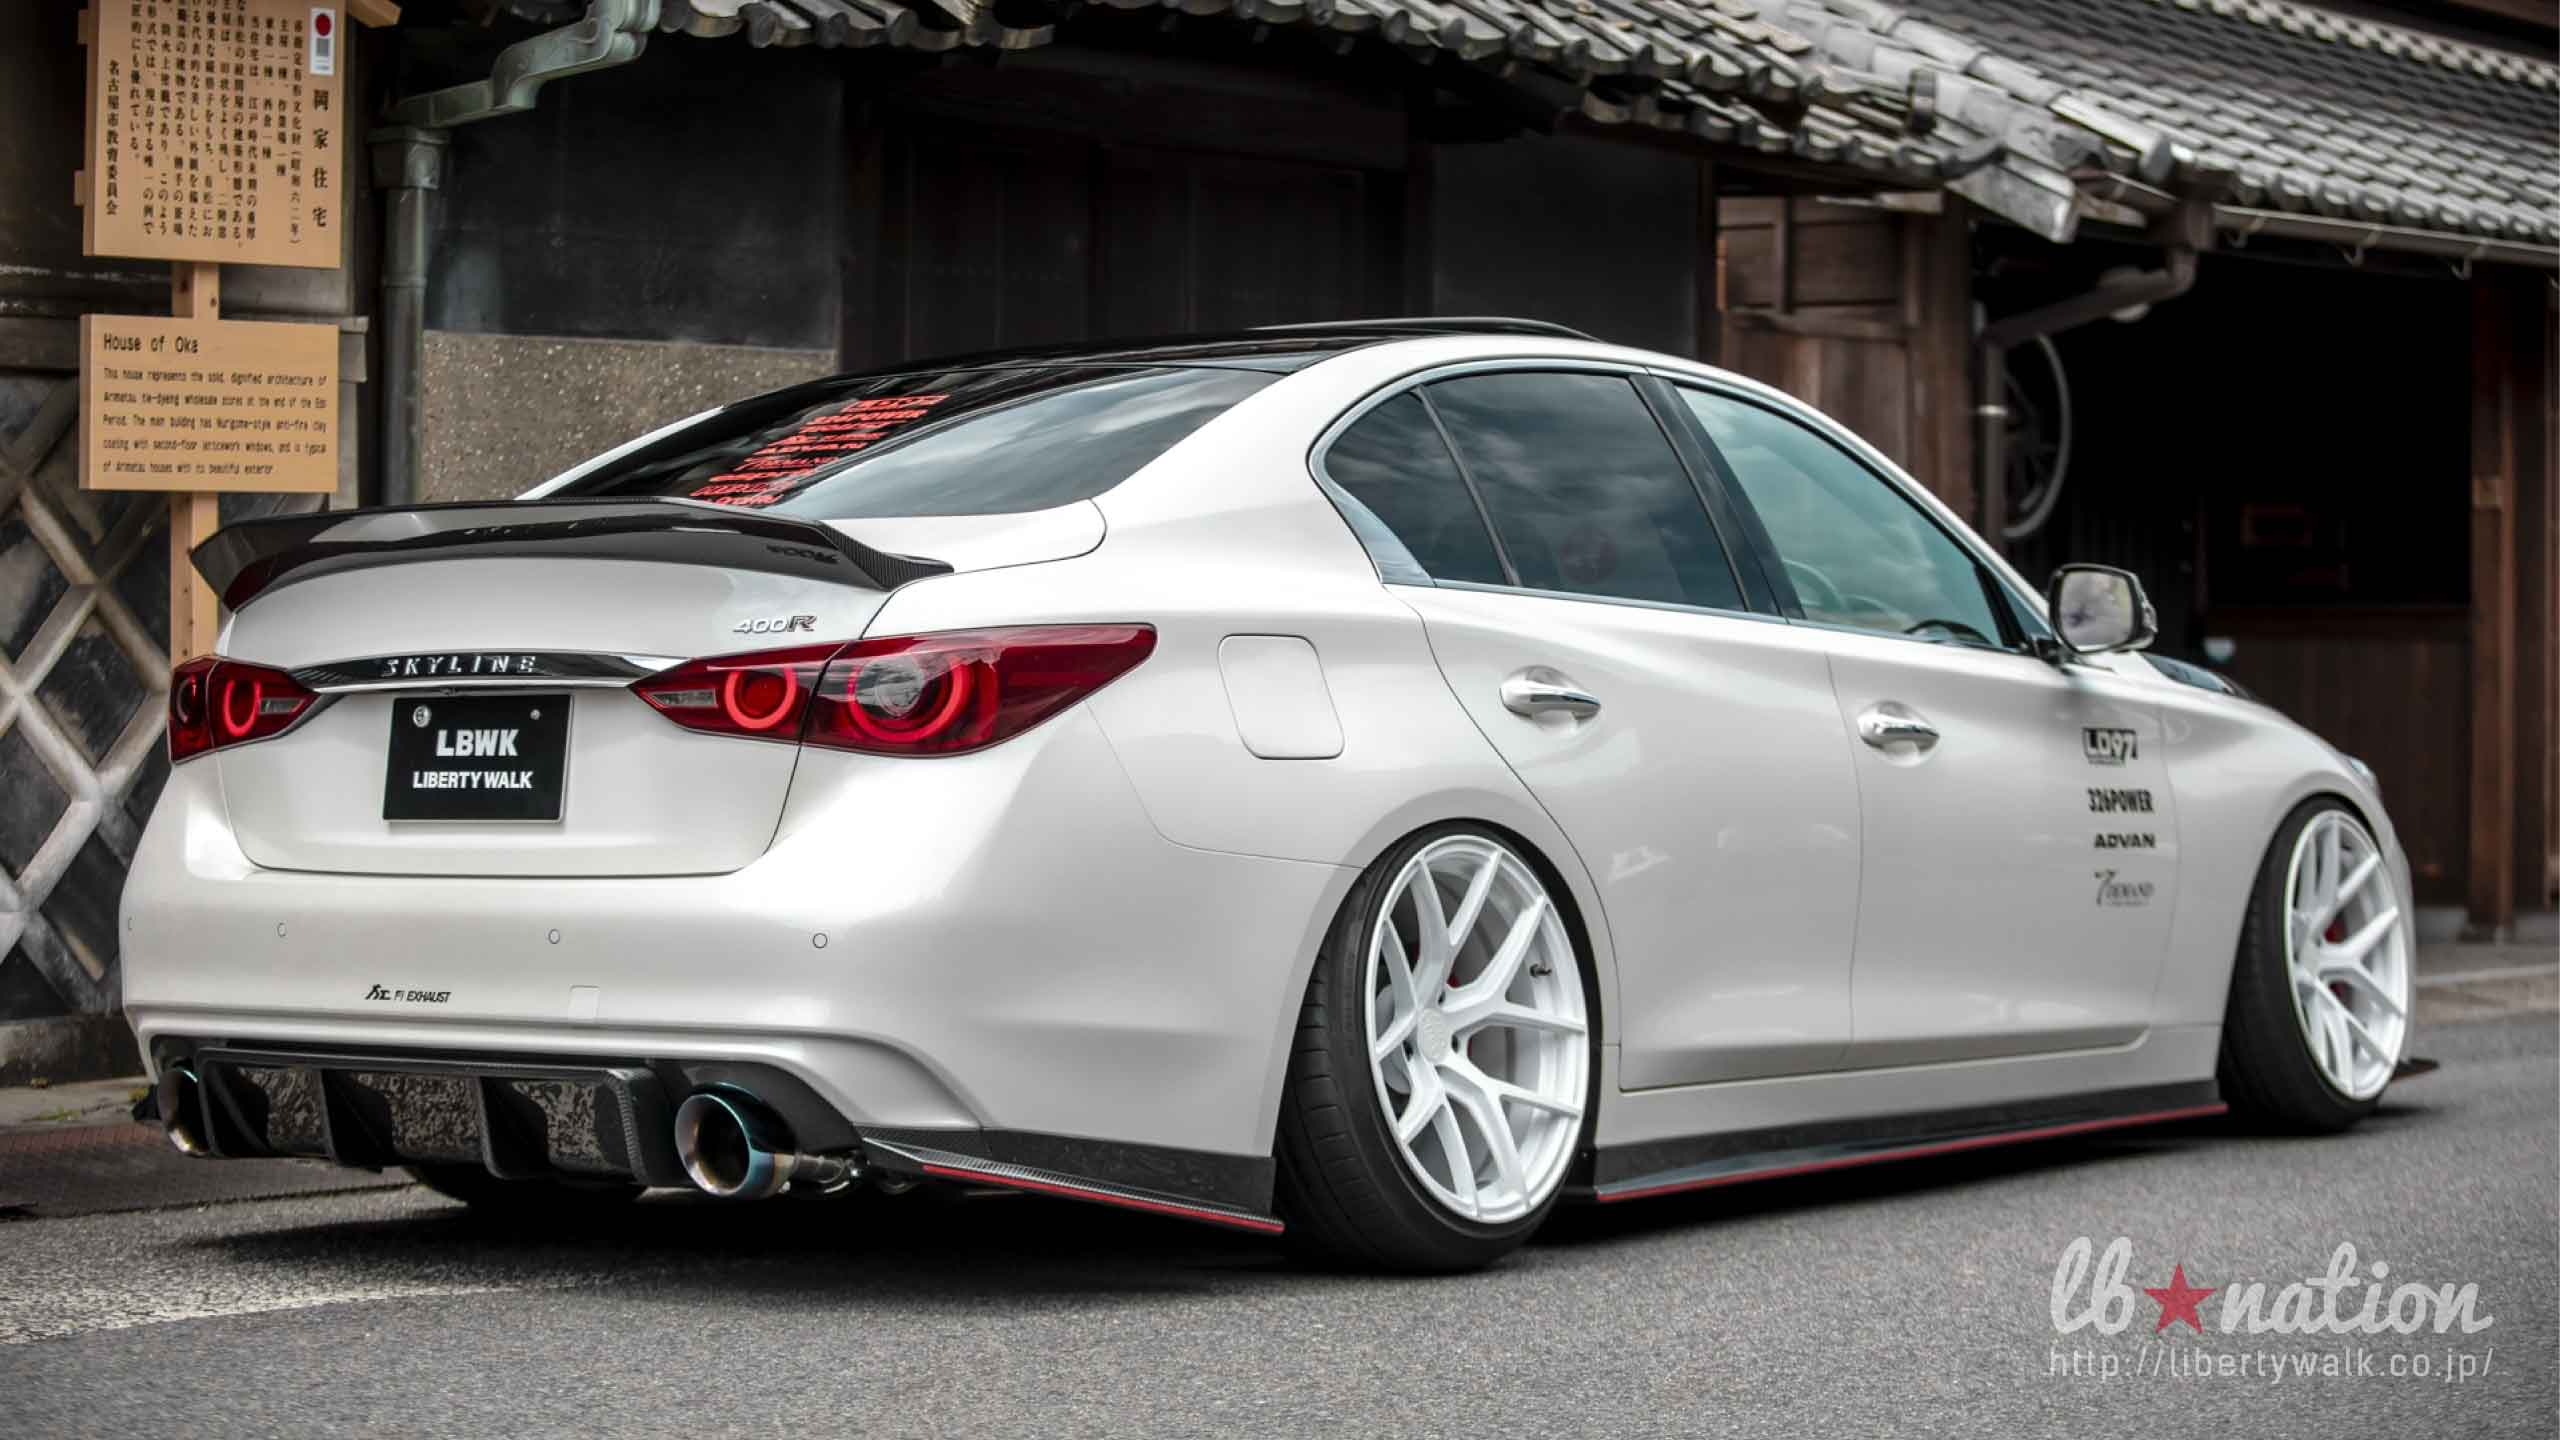 V37_7 lb★nation  NISSAN V37 SKYLINE / INFINITI Q50